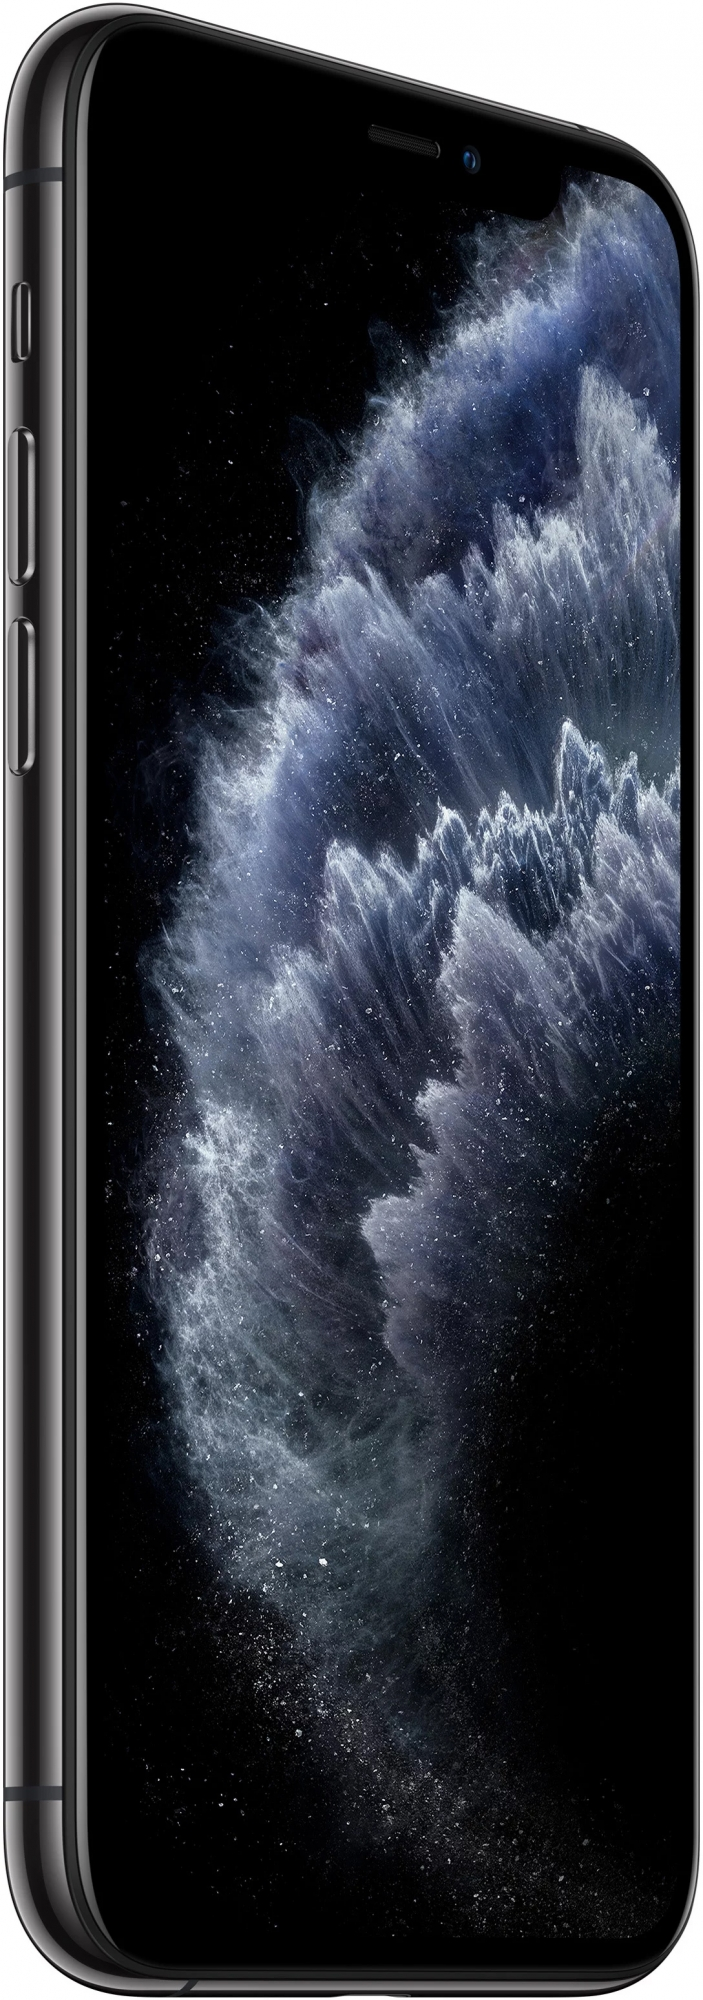 Смартфон Apple iPhone 11 Pro Max 64Gb Space Gray (MWHD2RU/A)